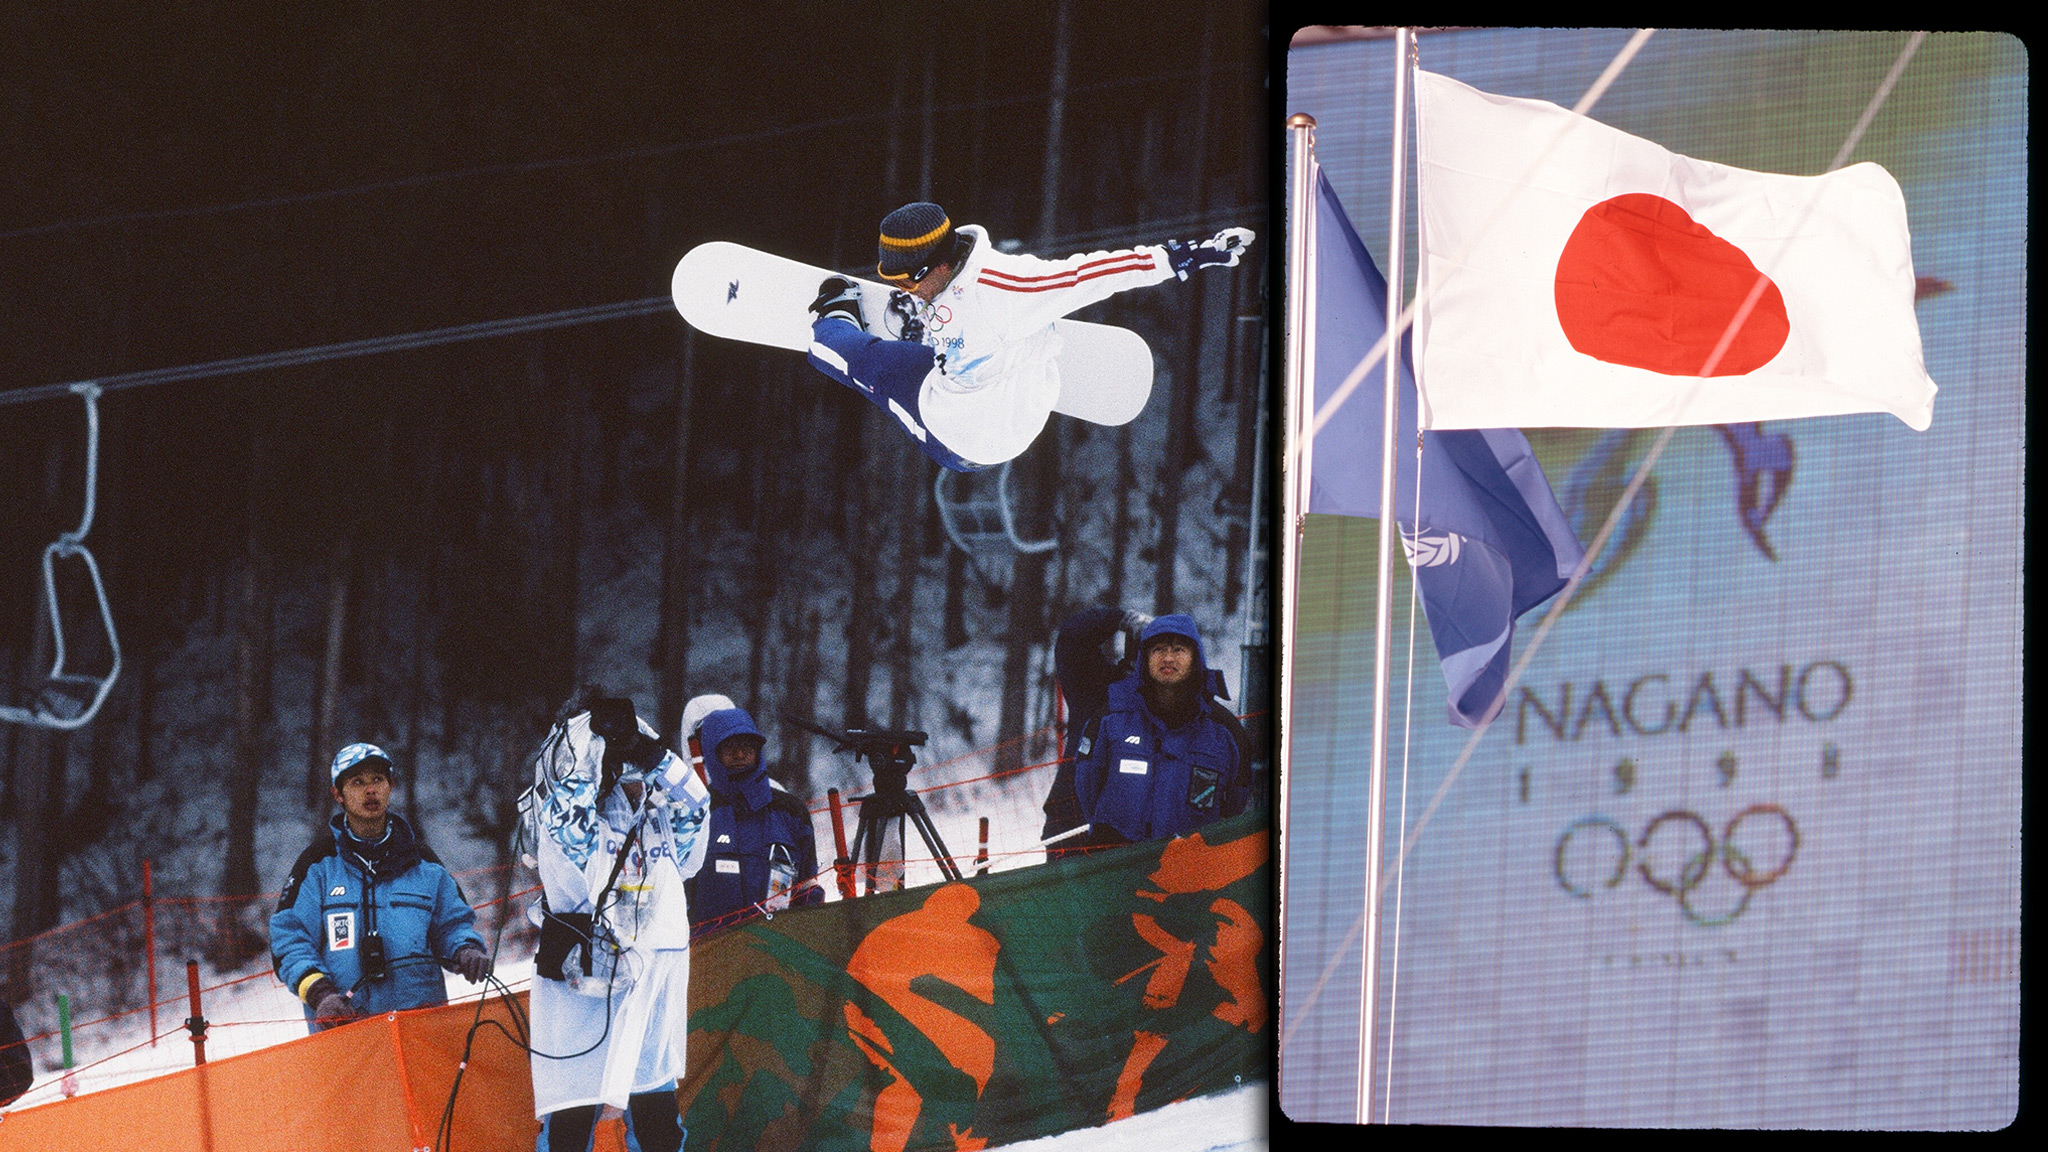 Guillaume Chastagnol of France rides his way to fifth place in front of empty stands at the first Olympic halfpipe event in Nagano, Japan.